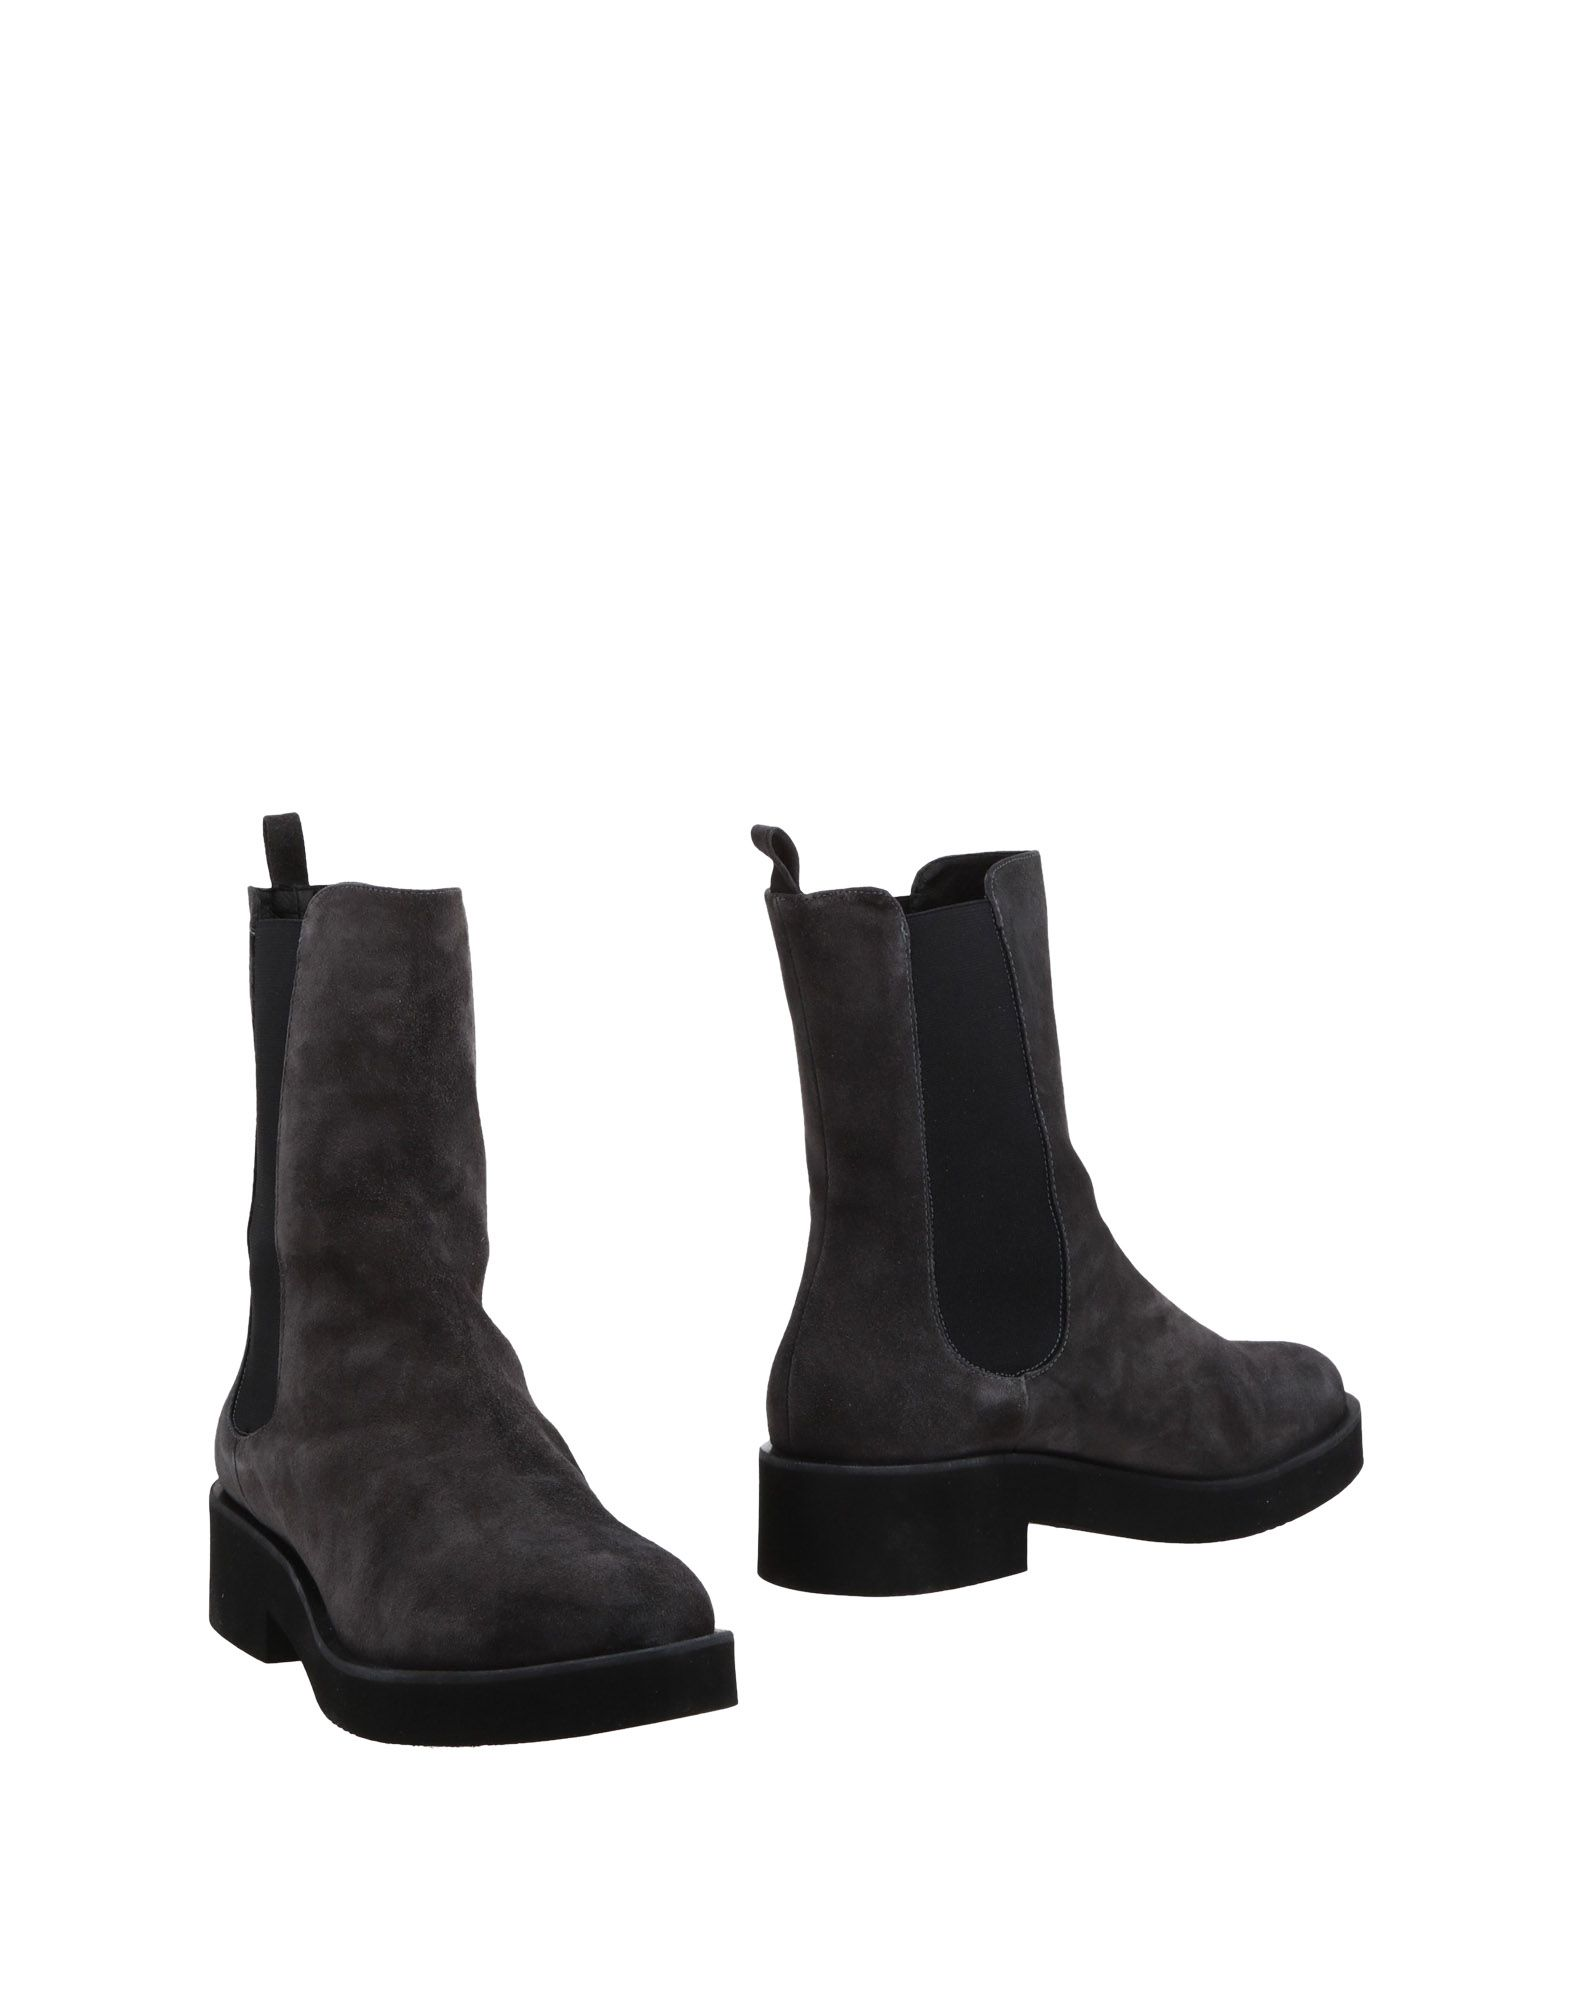 Eqüitare Ankle Ankle Boot - Women Eqüitare Ankle Ankle Boots online on  Australia - 11486676VM 81fdfe